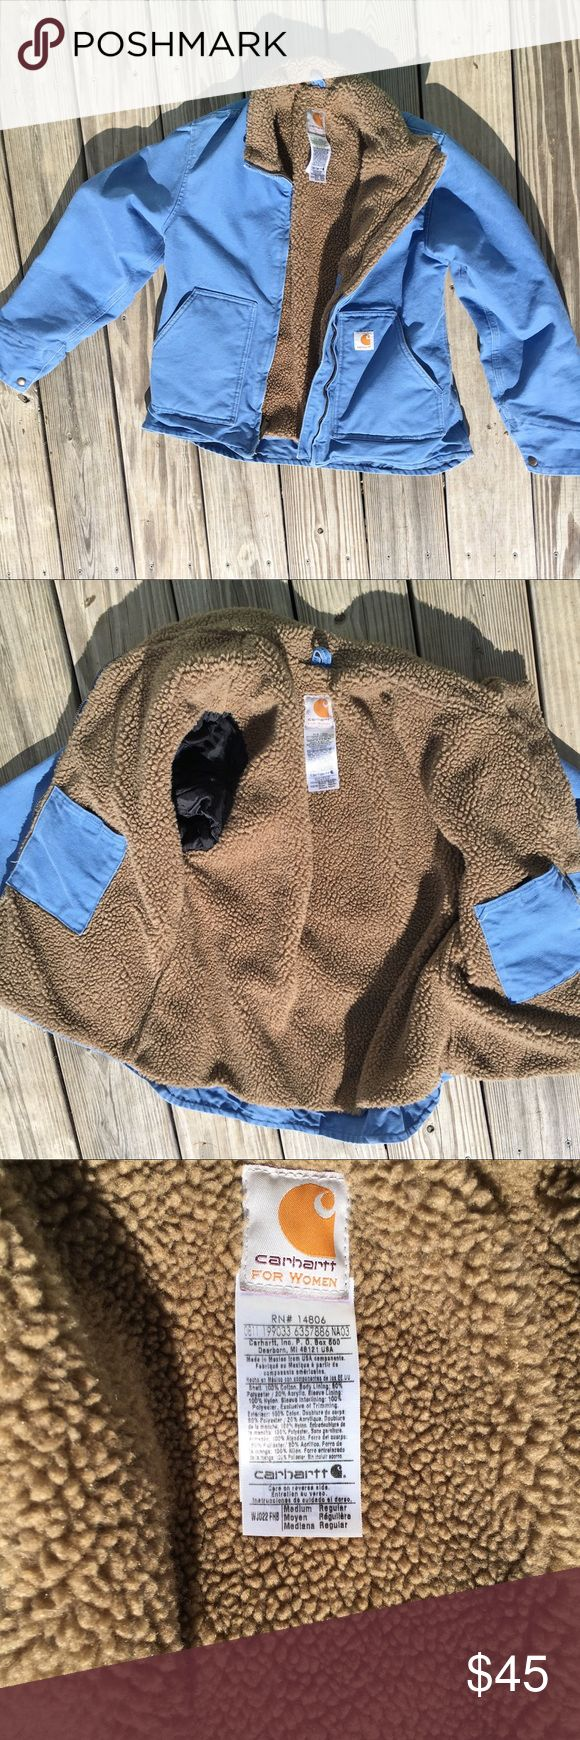 Carhartt sherpa lined, ladies medium, blue Up for sale because I'm too wide in the shoulders is a blue Ladies Carhartt Sherpa lined coat.  It's in excellent used condition and freshly laundered! Carhartt Jackets & Coats Utility Jackets